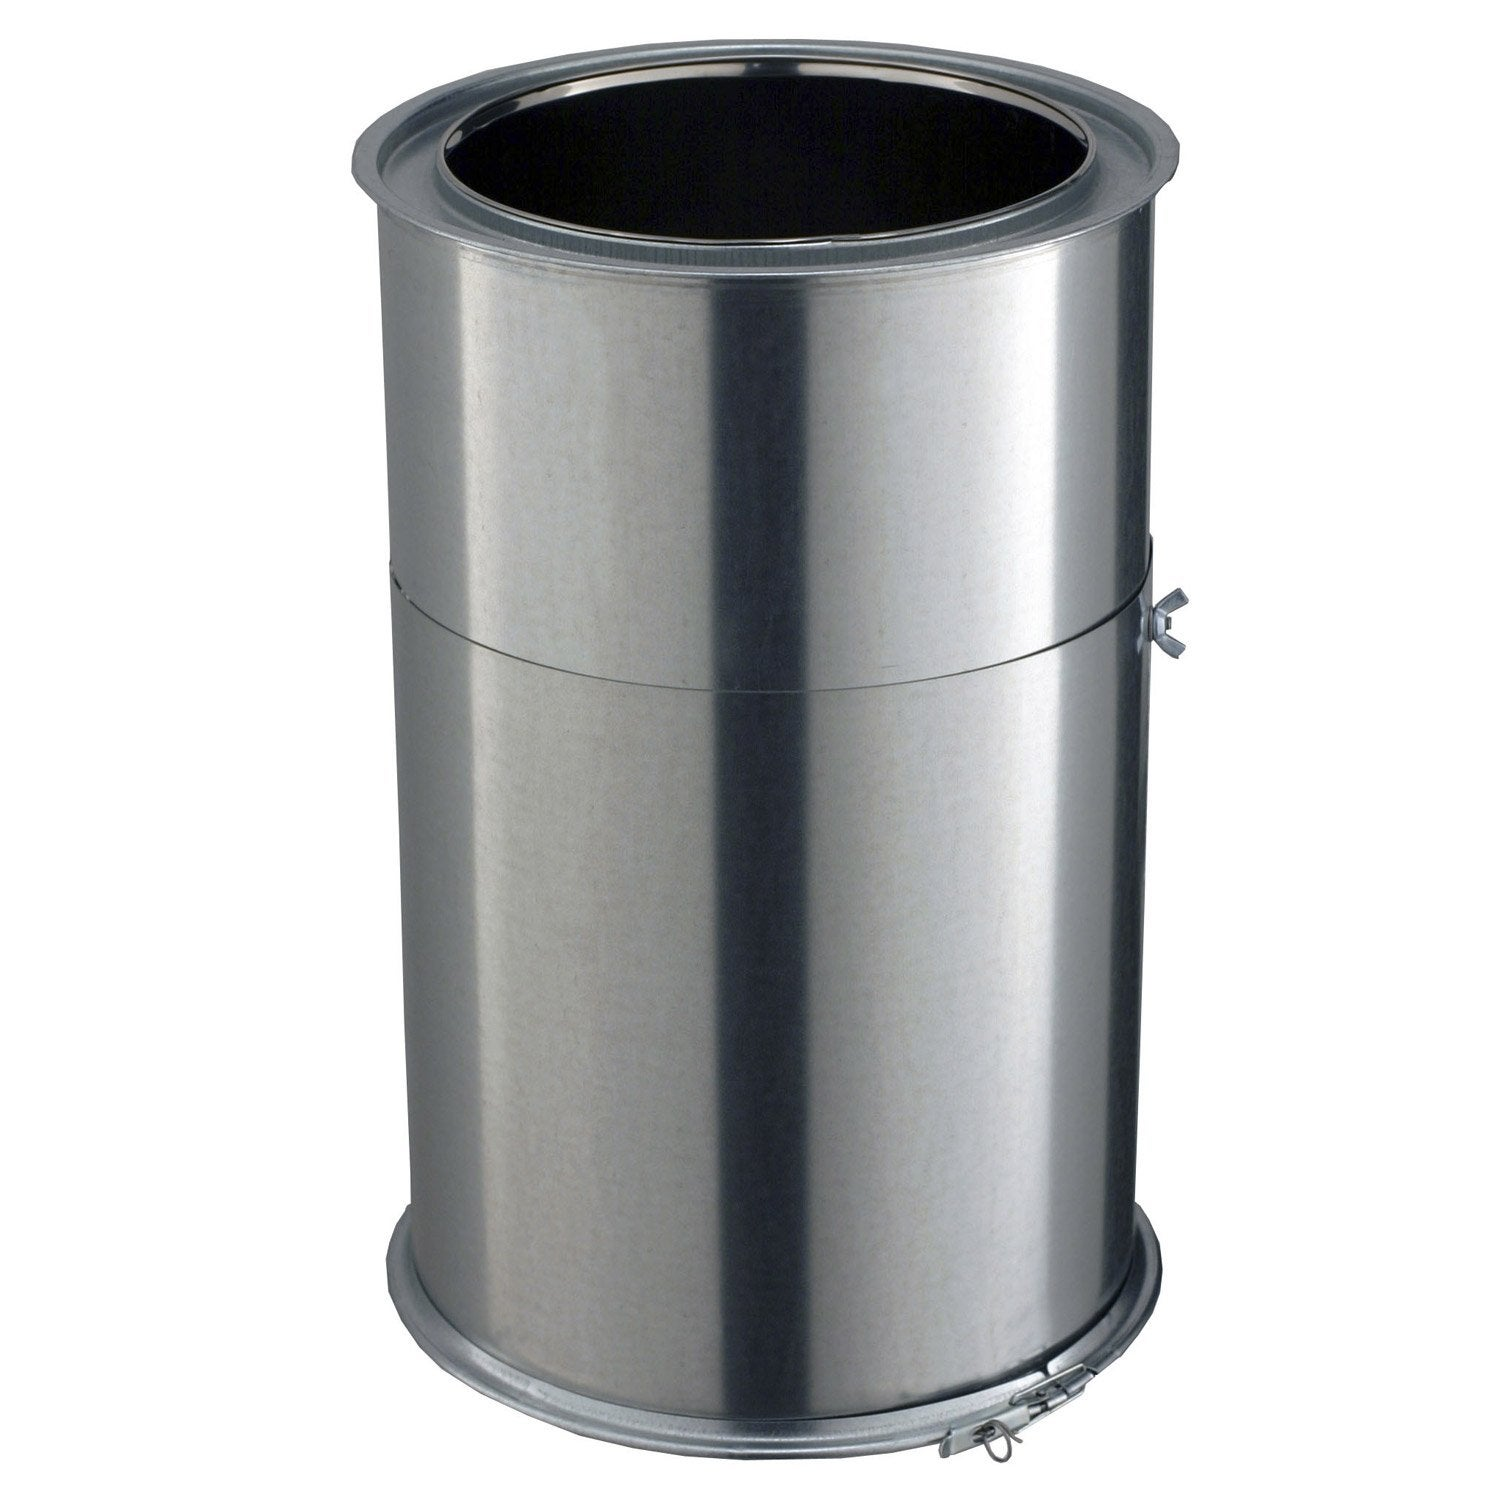 tuyau pour conduit double paroi poujoulat d230 mm m mm leroy merlin. Black Bedroom Furniture Sets. Home Design Ideas